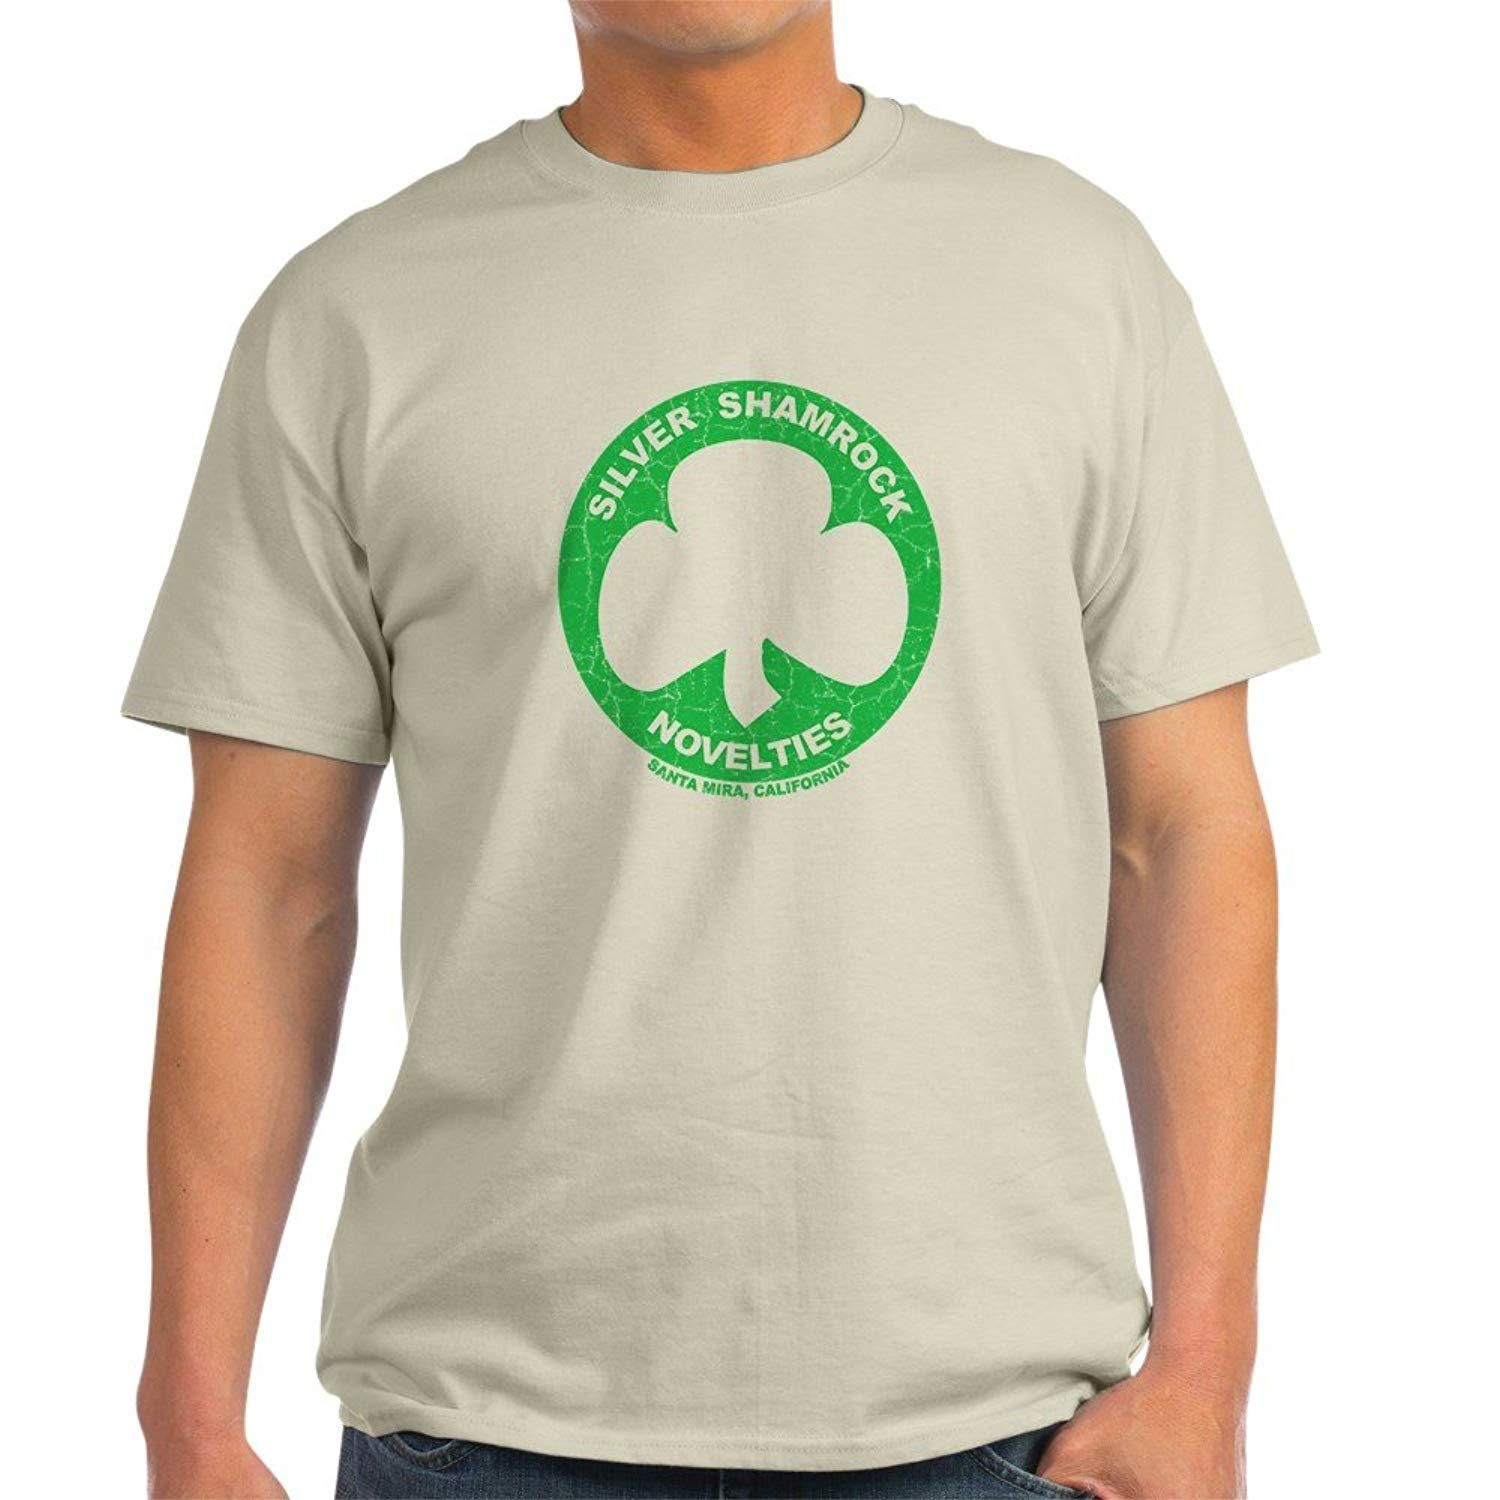 cda581bd CafePress Silver Shamrock Faded Light T Shirt 100% Cotton T Shirt Random T  Shirts Poker T Shirts From Allthingsgood, $11.01| DHgate.Com